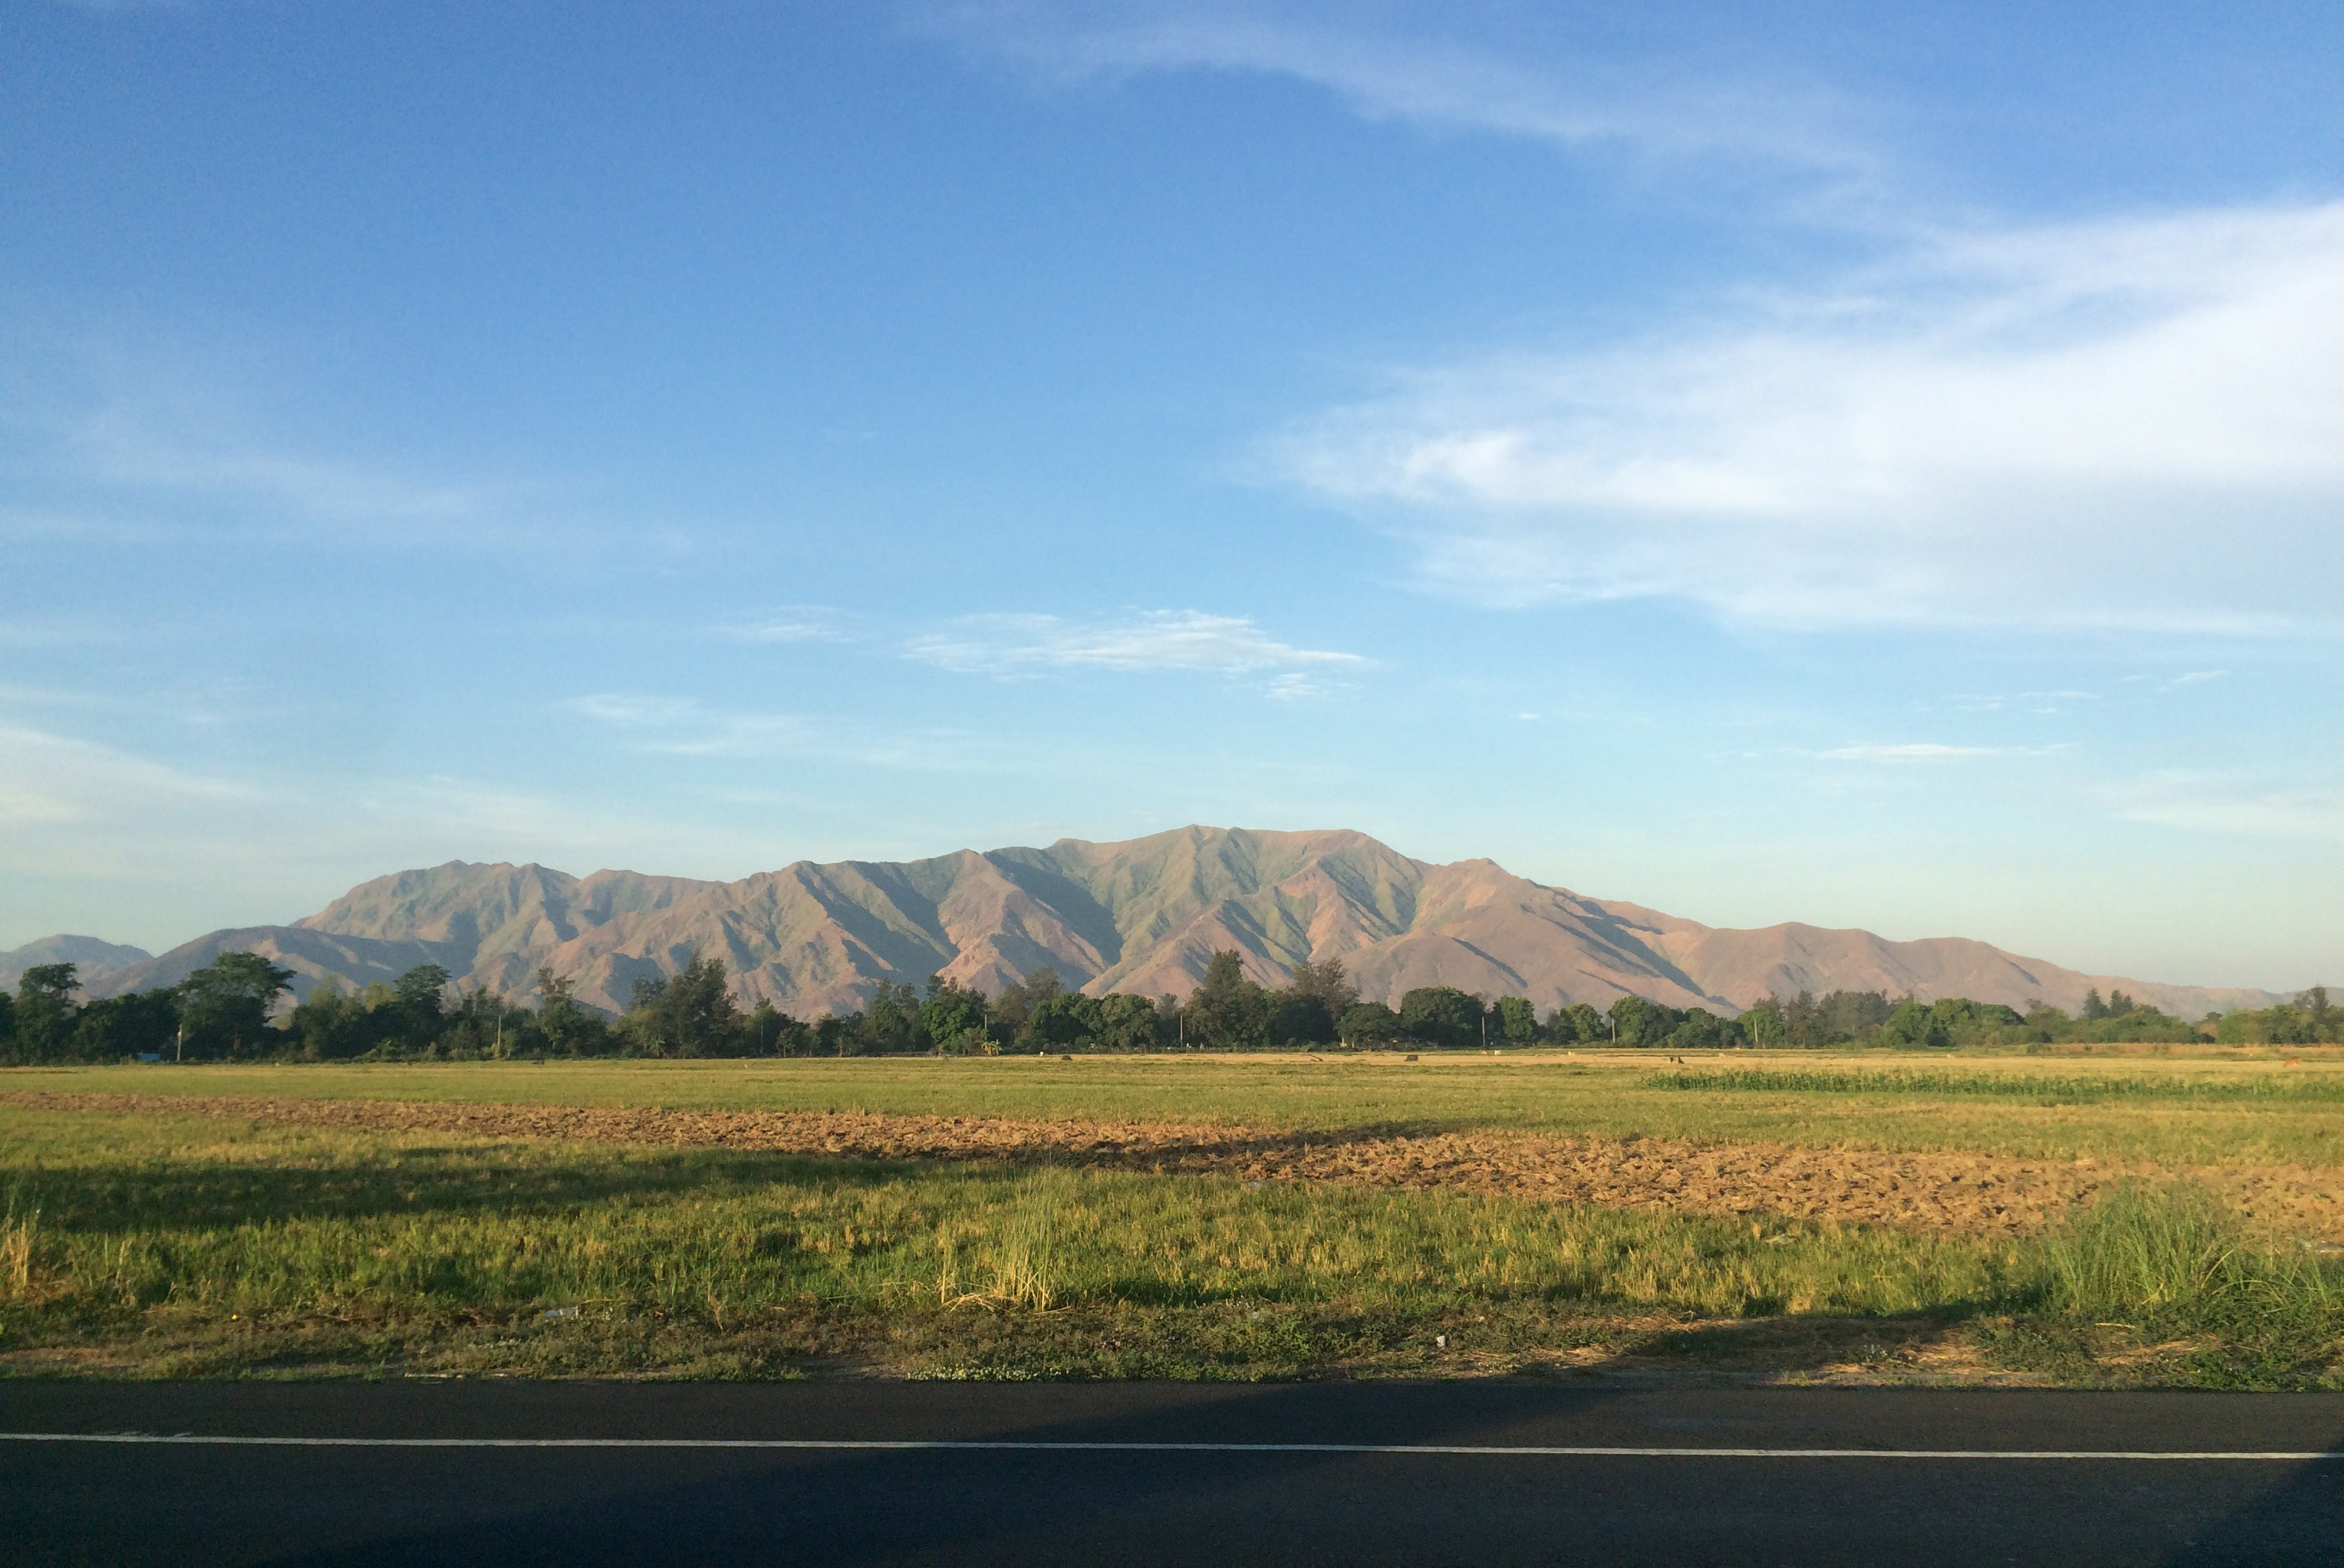 On the road to Zambales